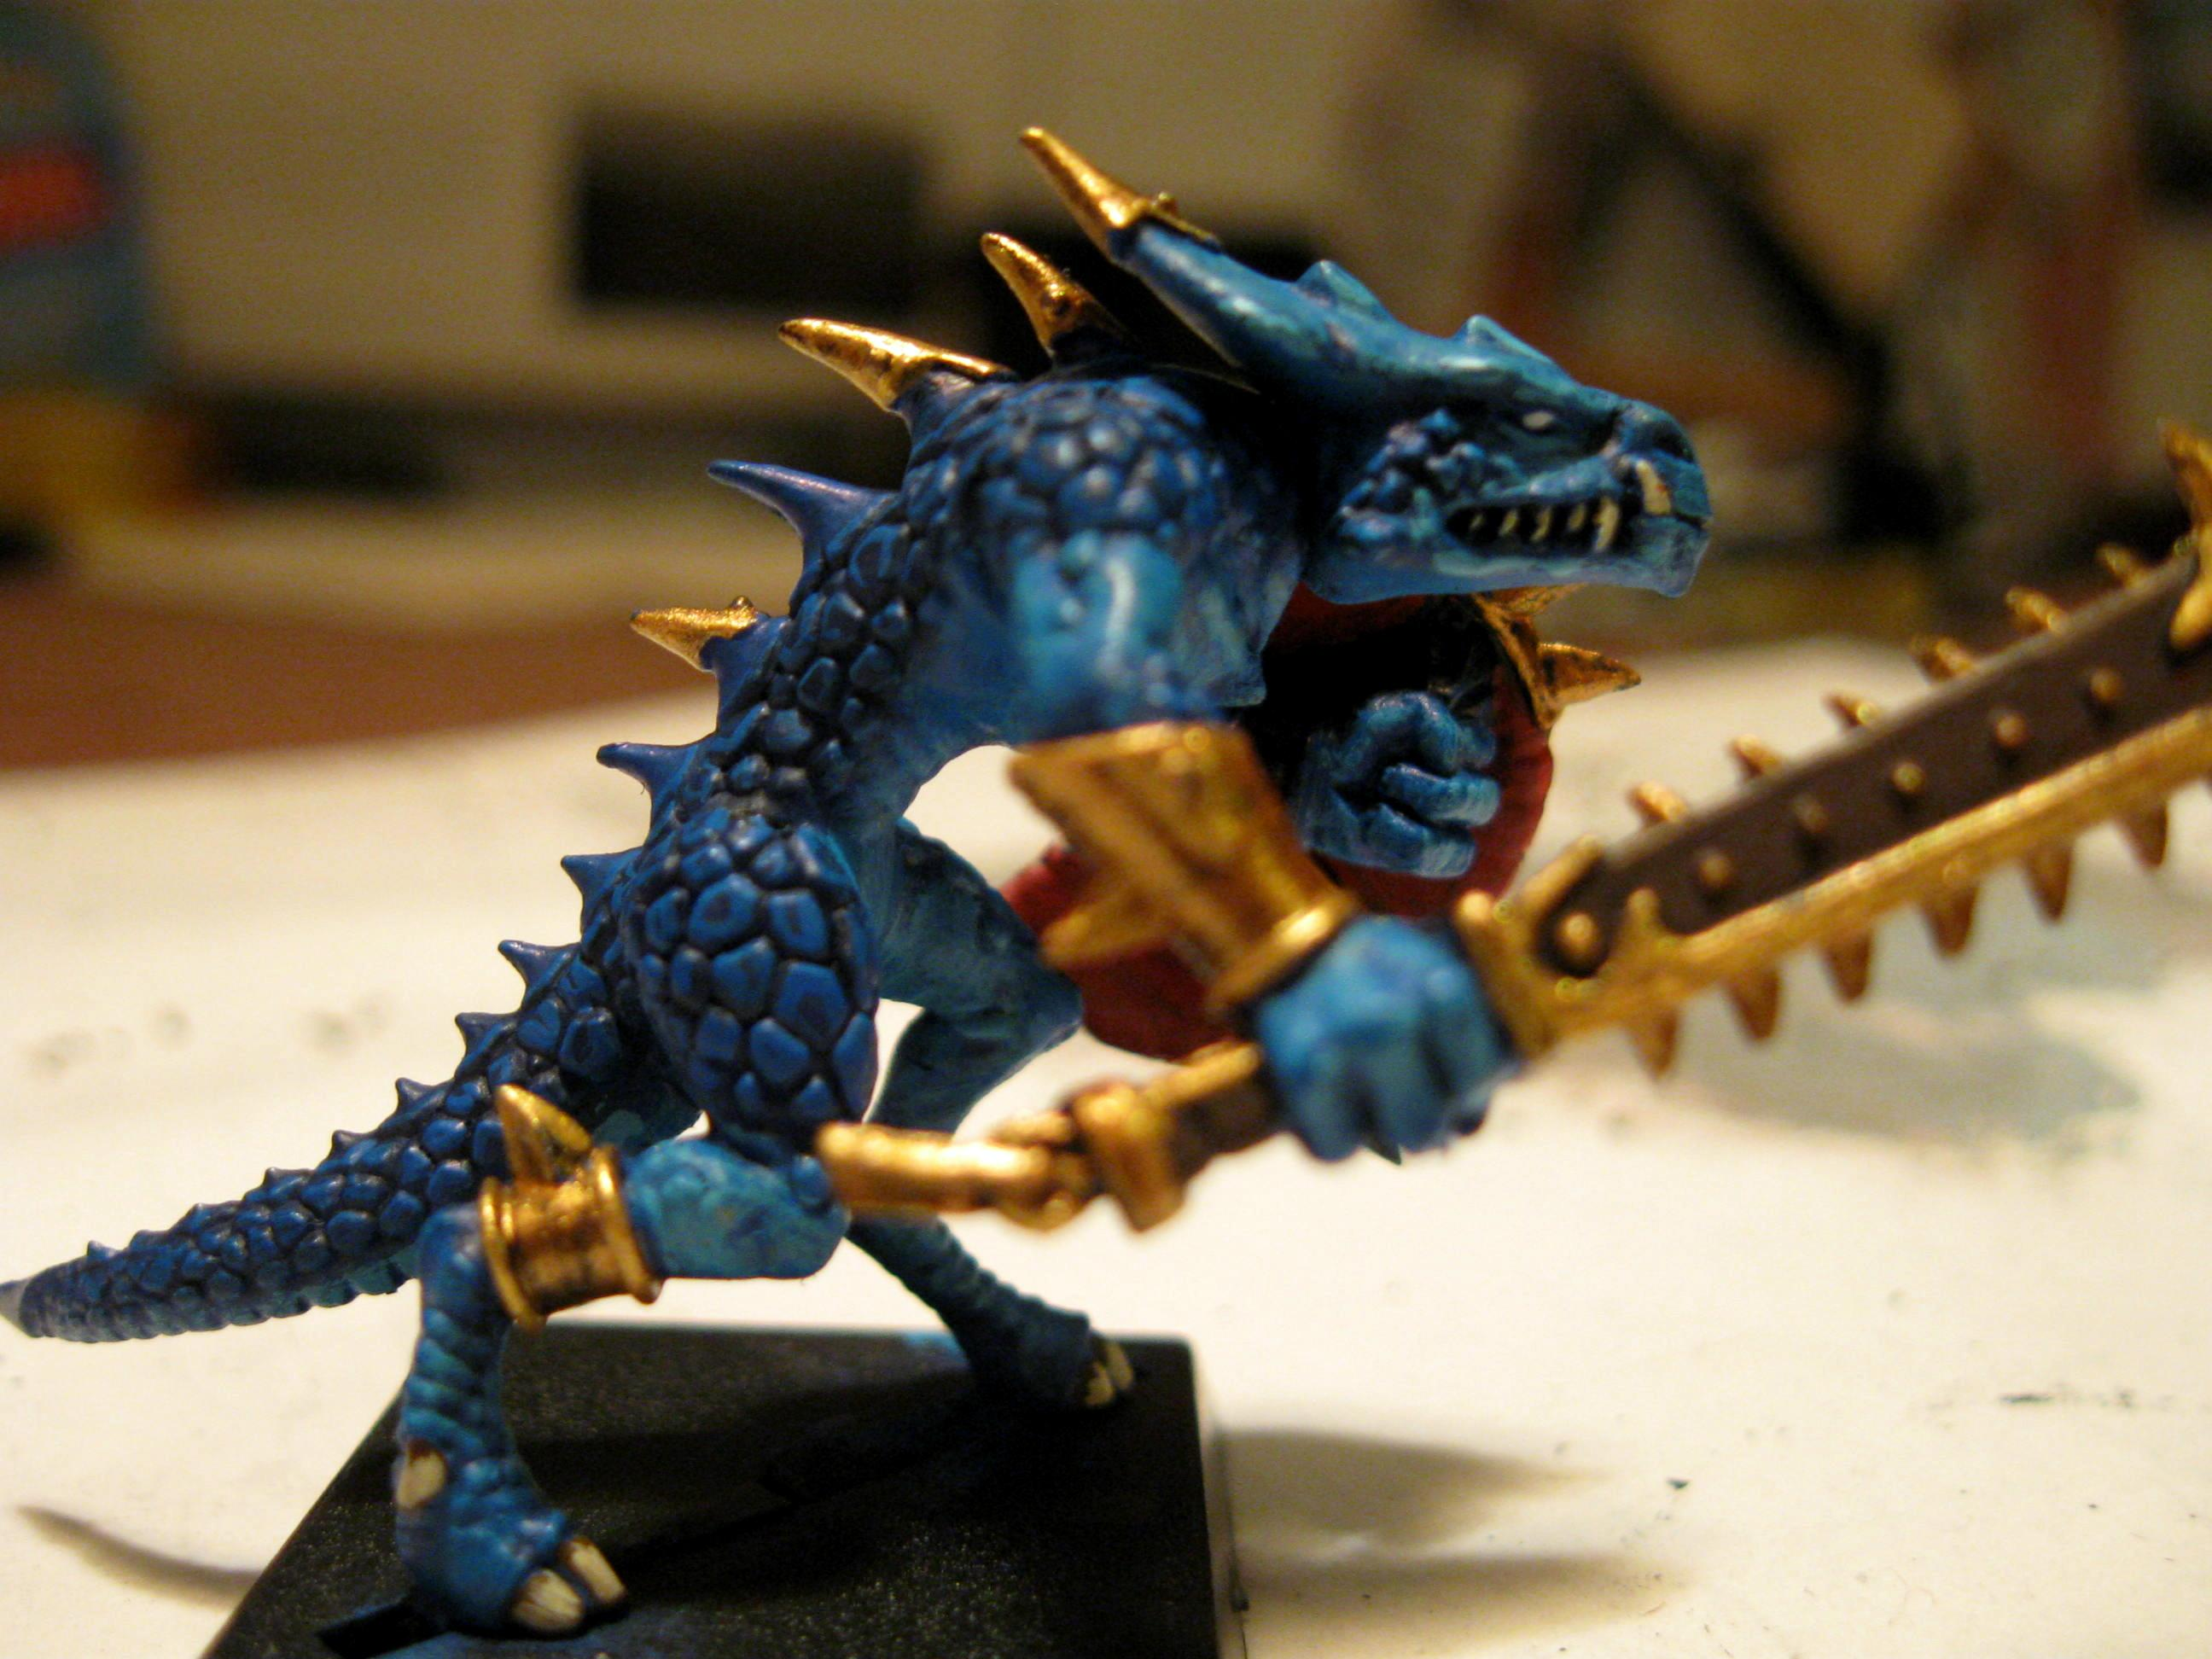 First Fantasy Model, Lizardmen, Saurus Warriors, Warhammer Fantasy